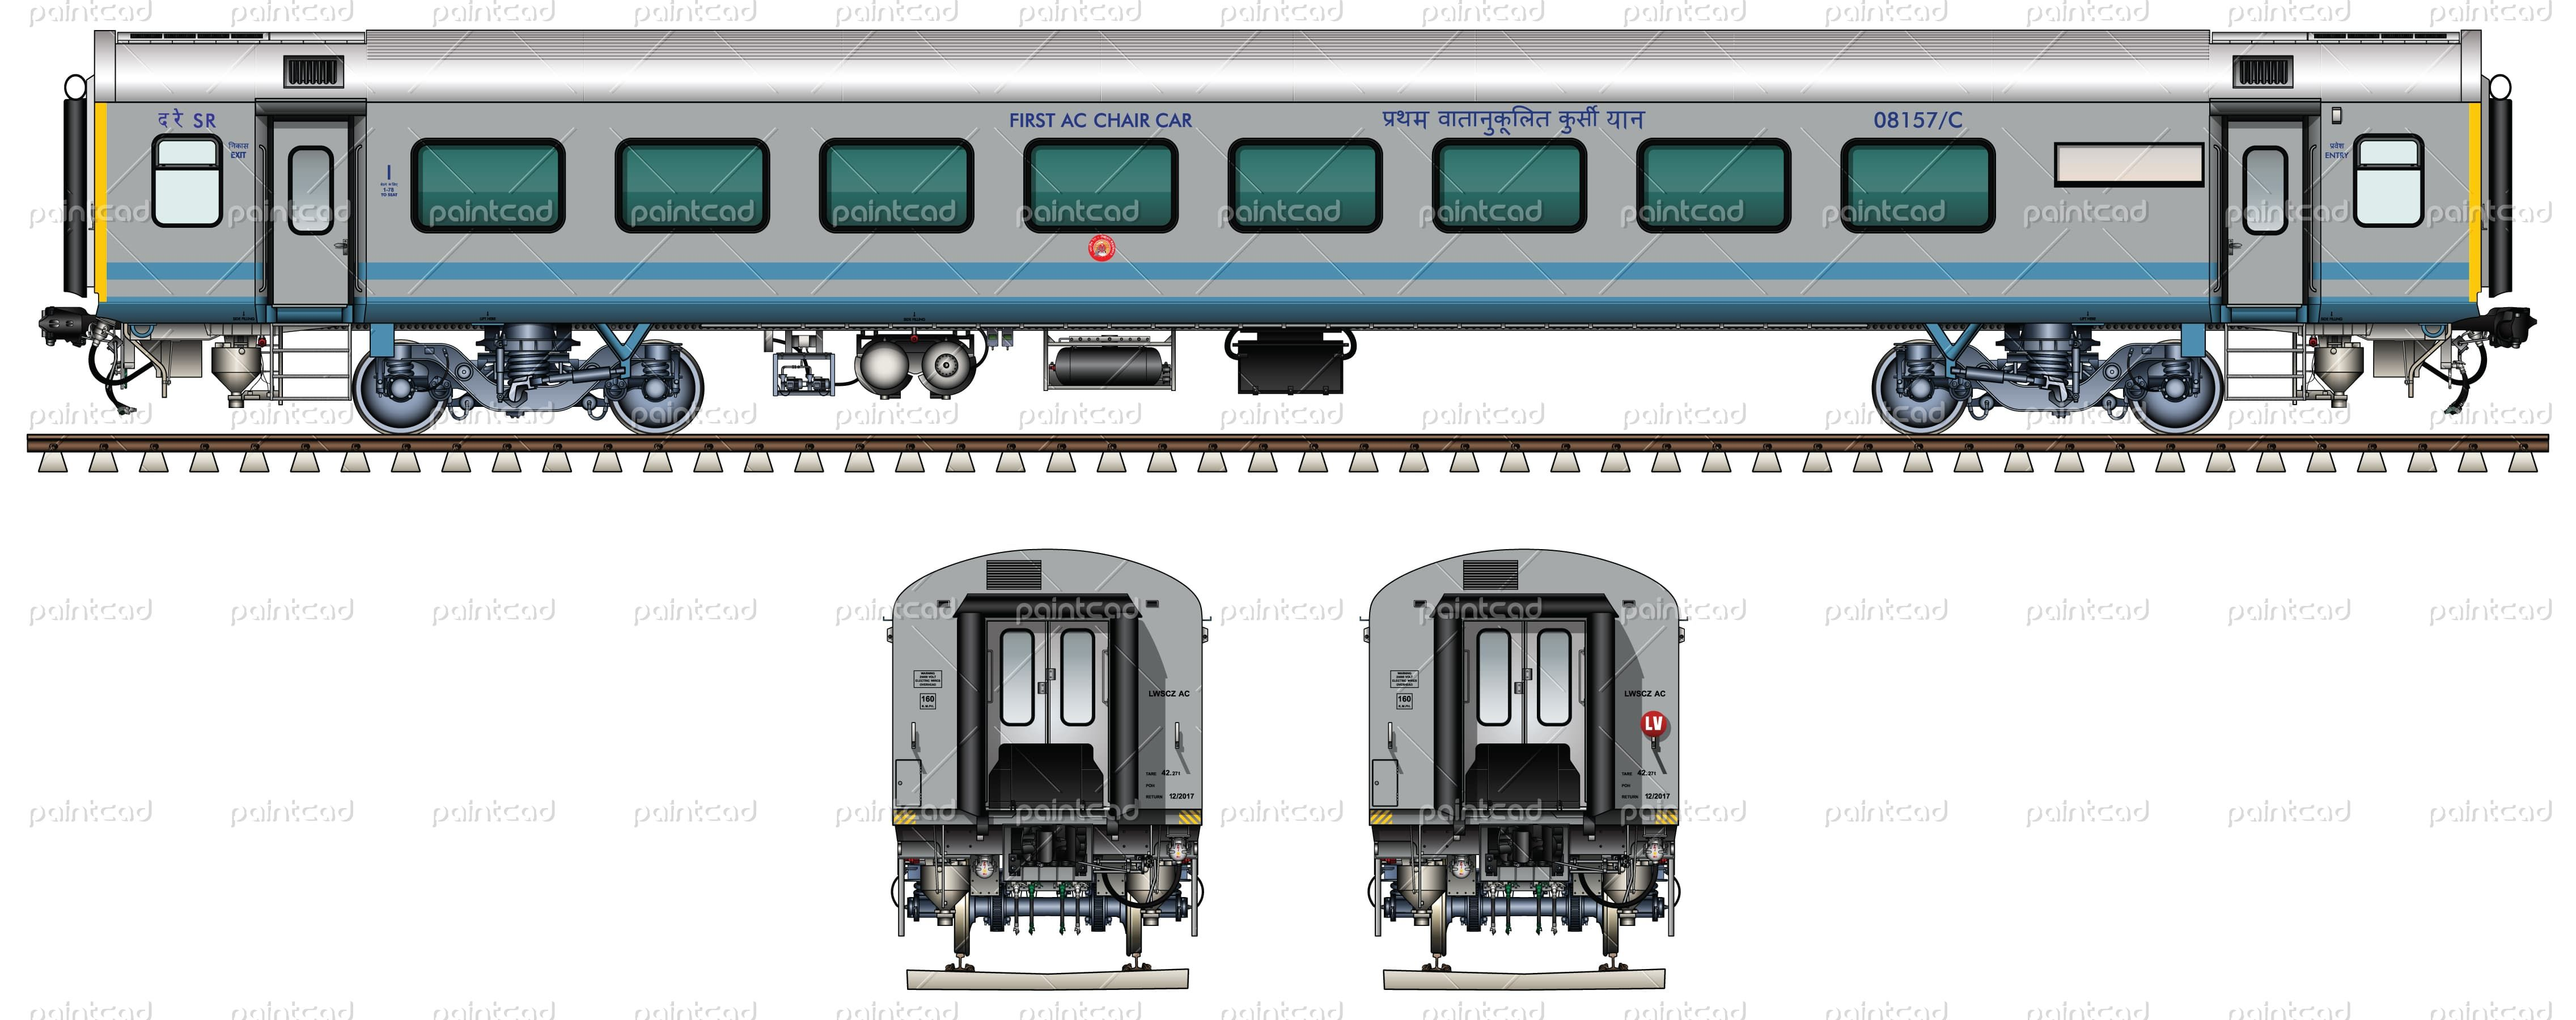 Lhb First Ac Chair Car Used In Indian Southern Railway Zone